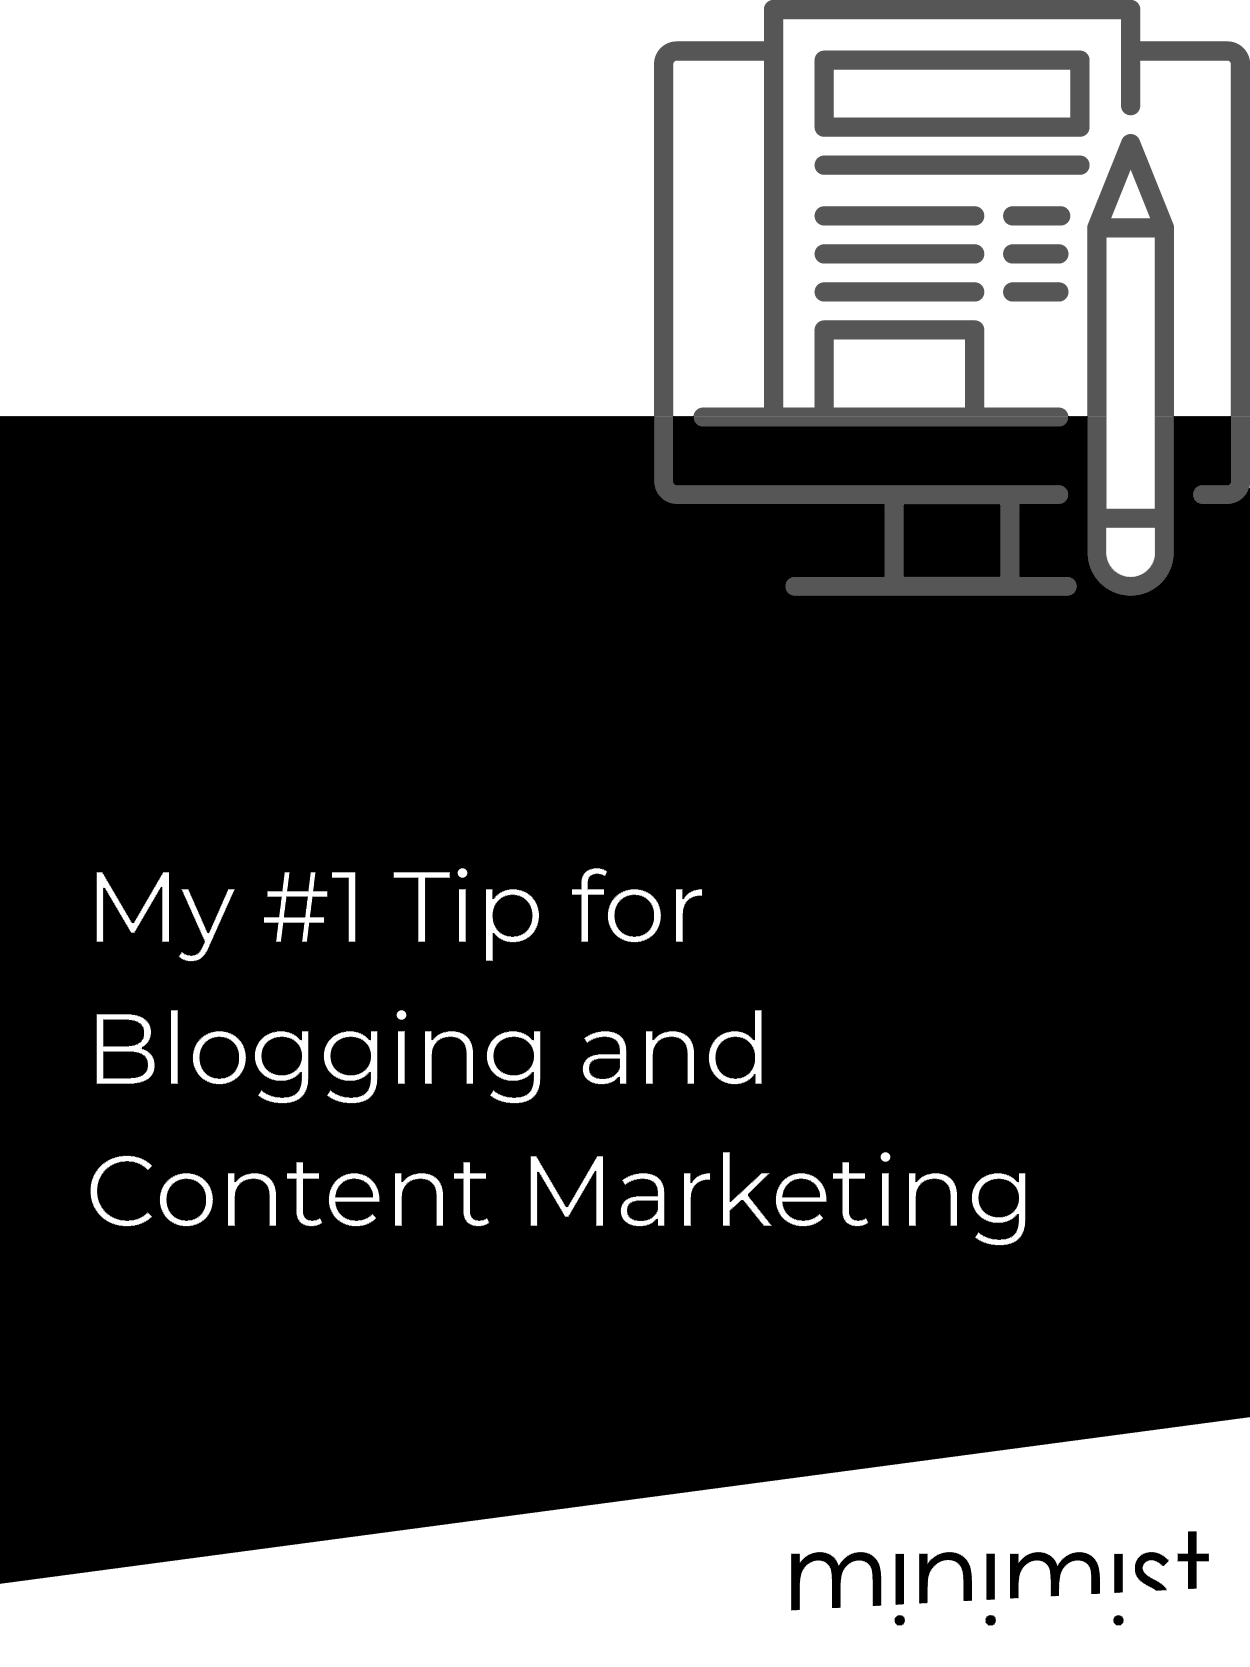 My #1 Tip for Blogging and Content Marketing